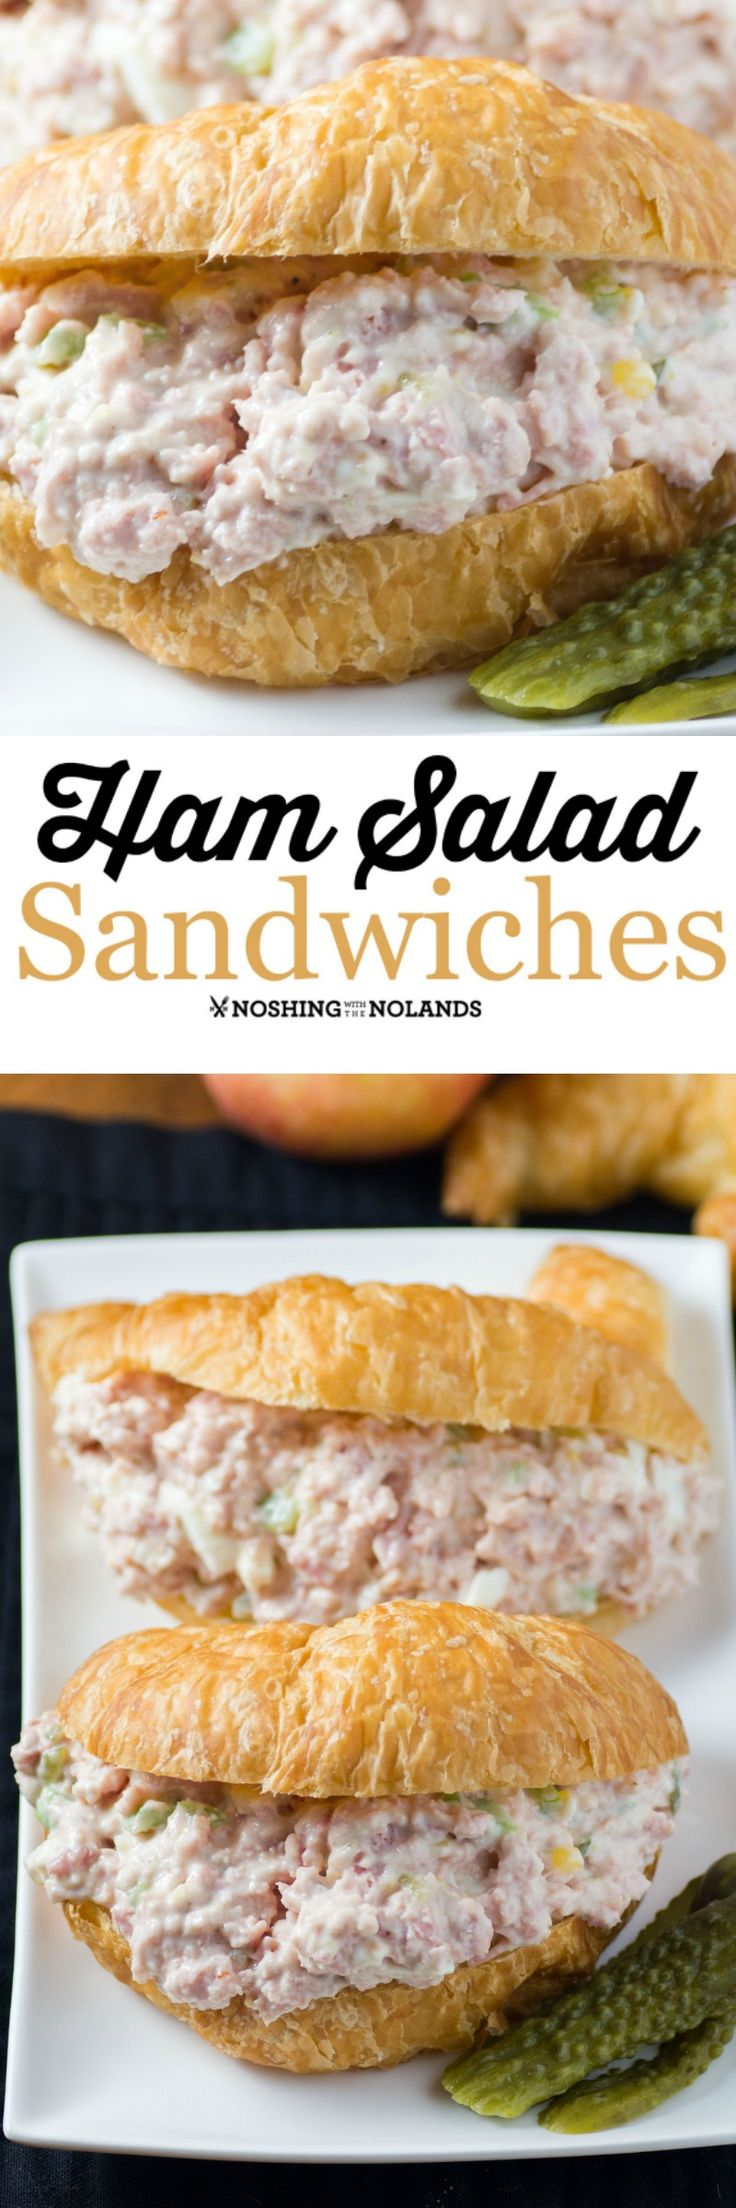 Ham Salad Sandwich - easy to make and so enjoyed by family and friends for a quick lunch, picnic or run out the door dinner!